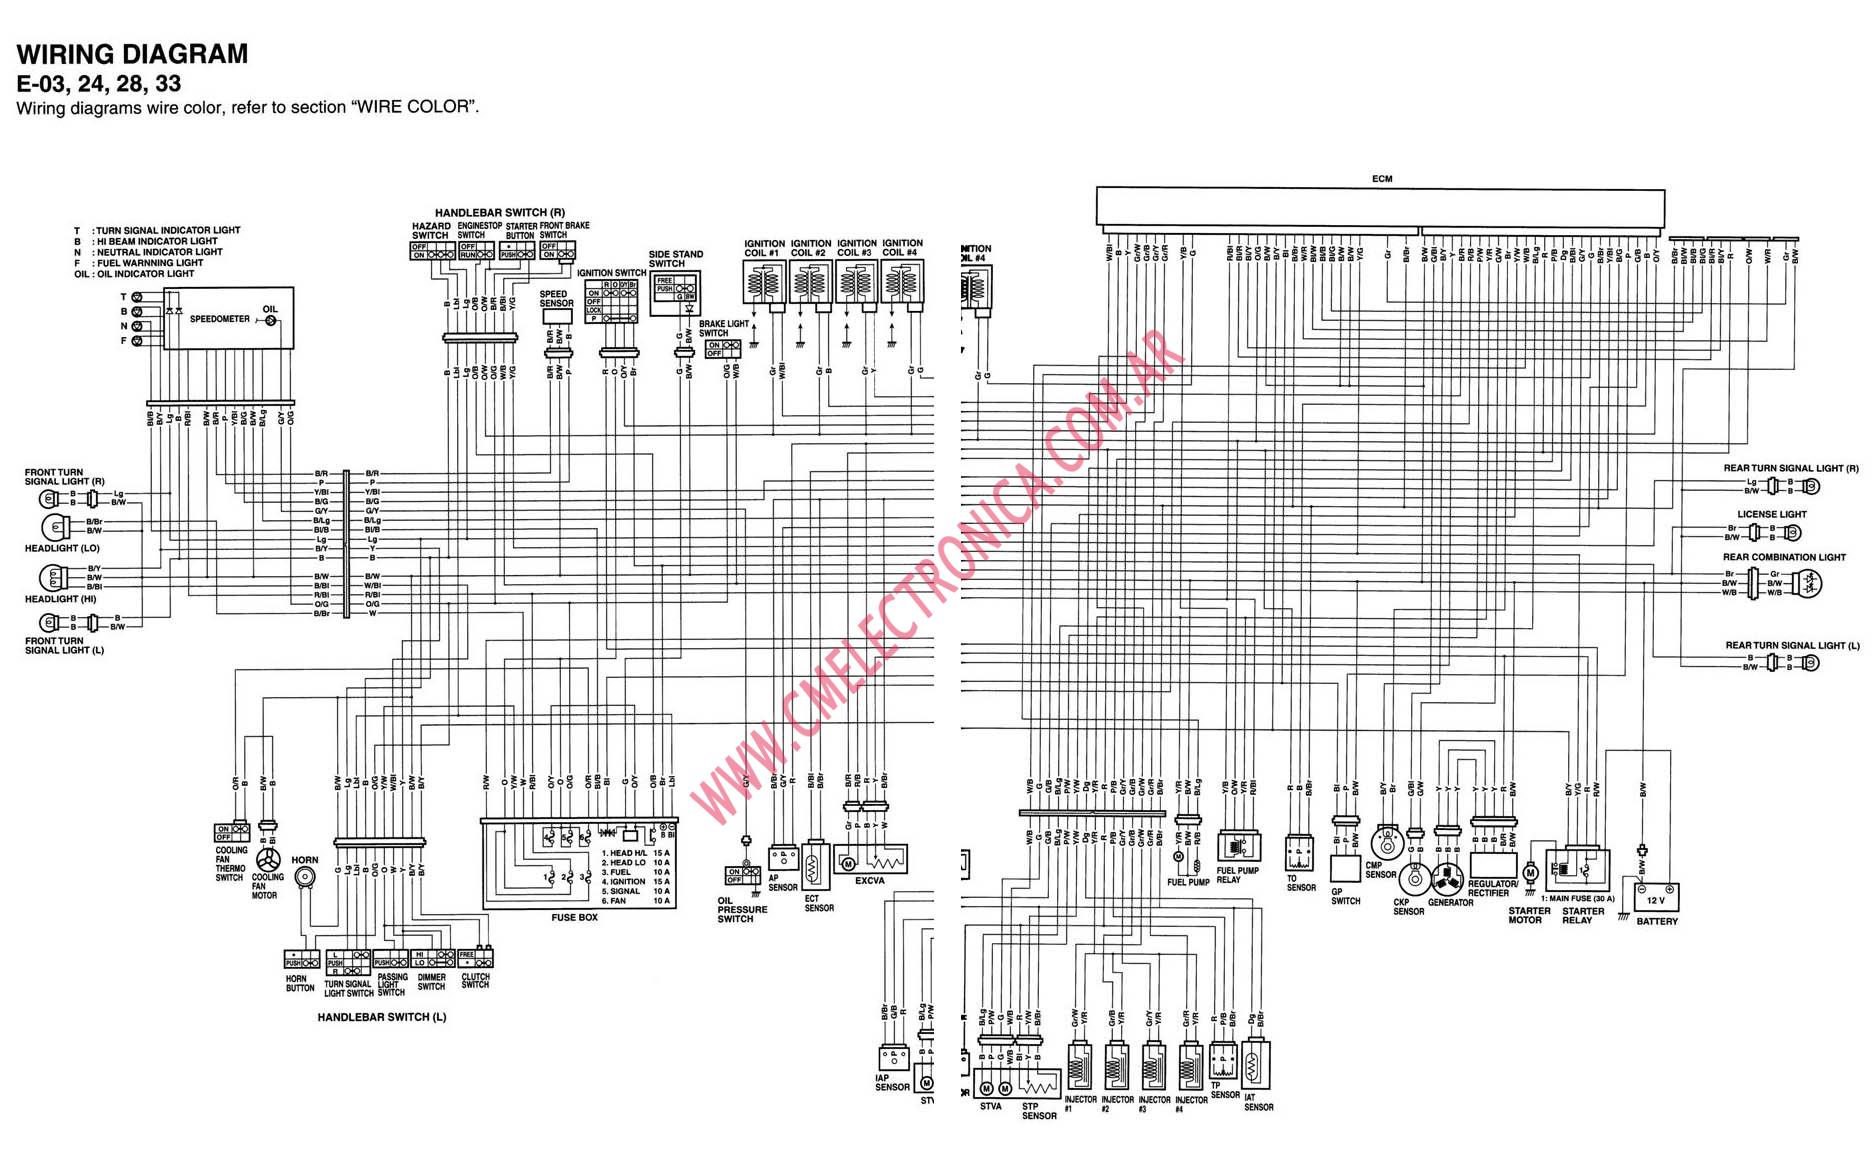 2006 Gsxr 1000 Taillight Wiring Diagram Residential Electrical Source ·  Amazing 2005 Suzuki Gsxr 600 Wiring Diagram Image Collection